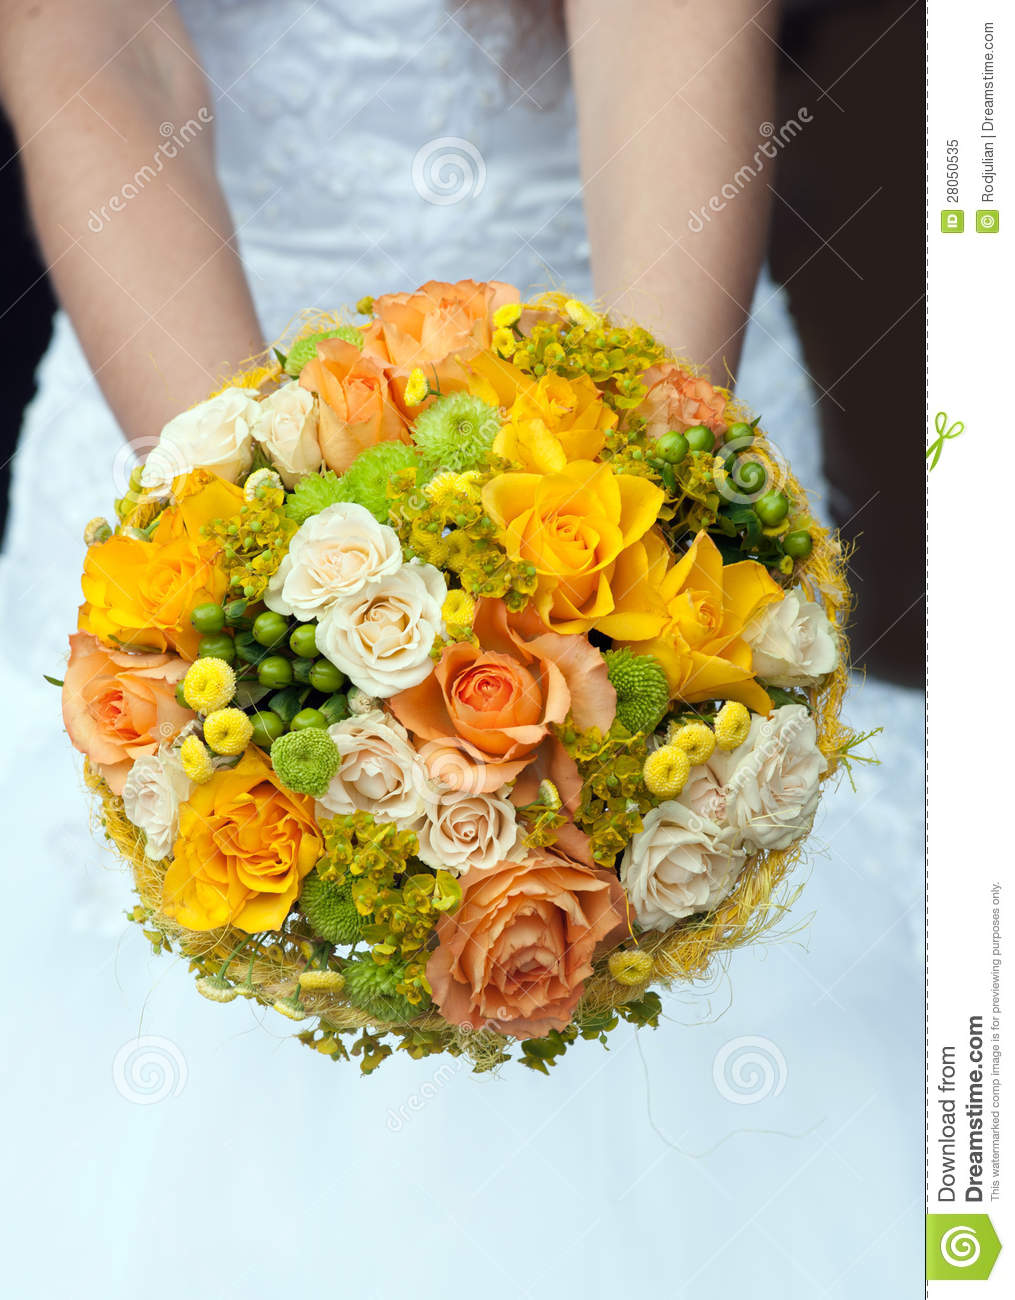 Wedding bouquet with yellow and orange roses stock image image of wedding bouquet with yellow and orange roses mightylinksfo